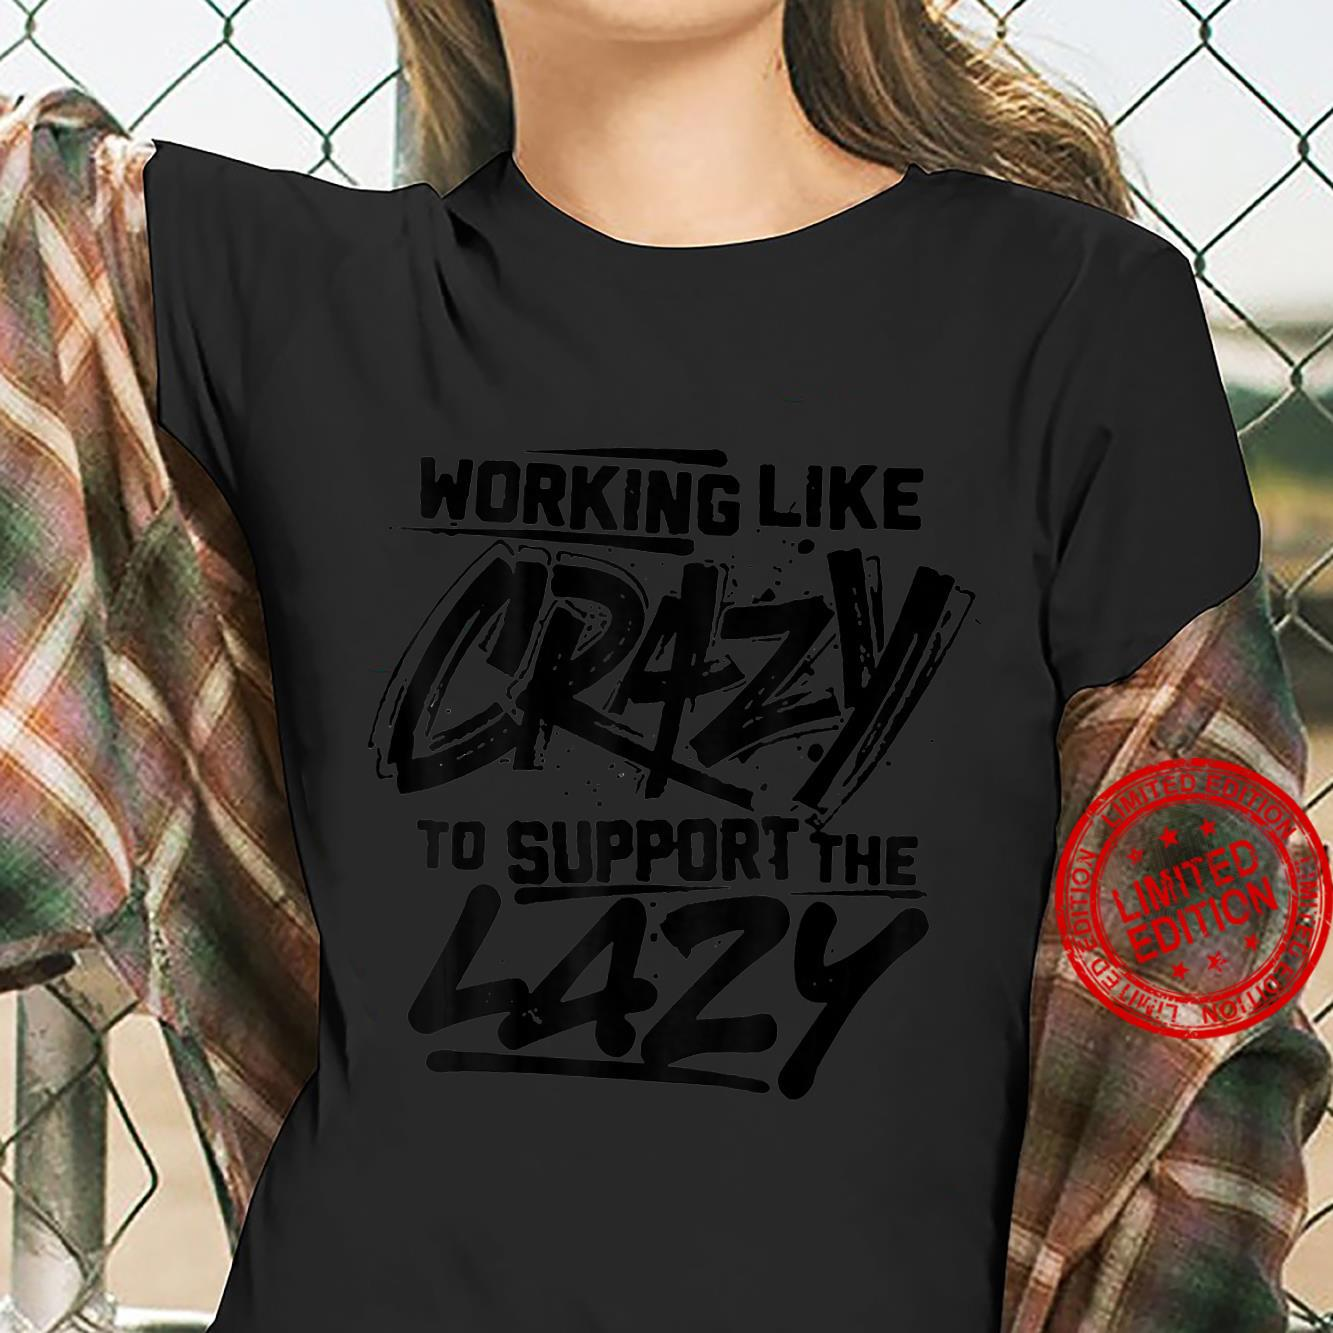 Working Like Crazy To Support The Lazy on back Shirt ladies tee